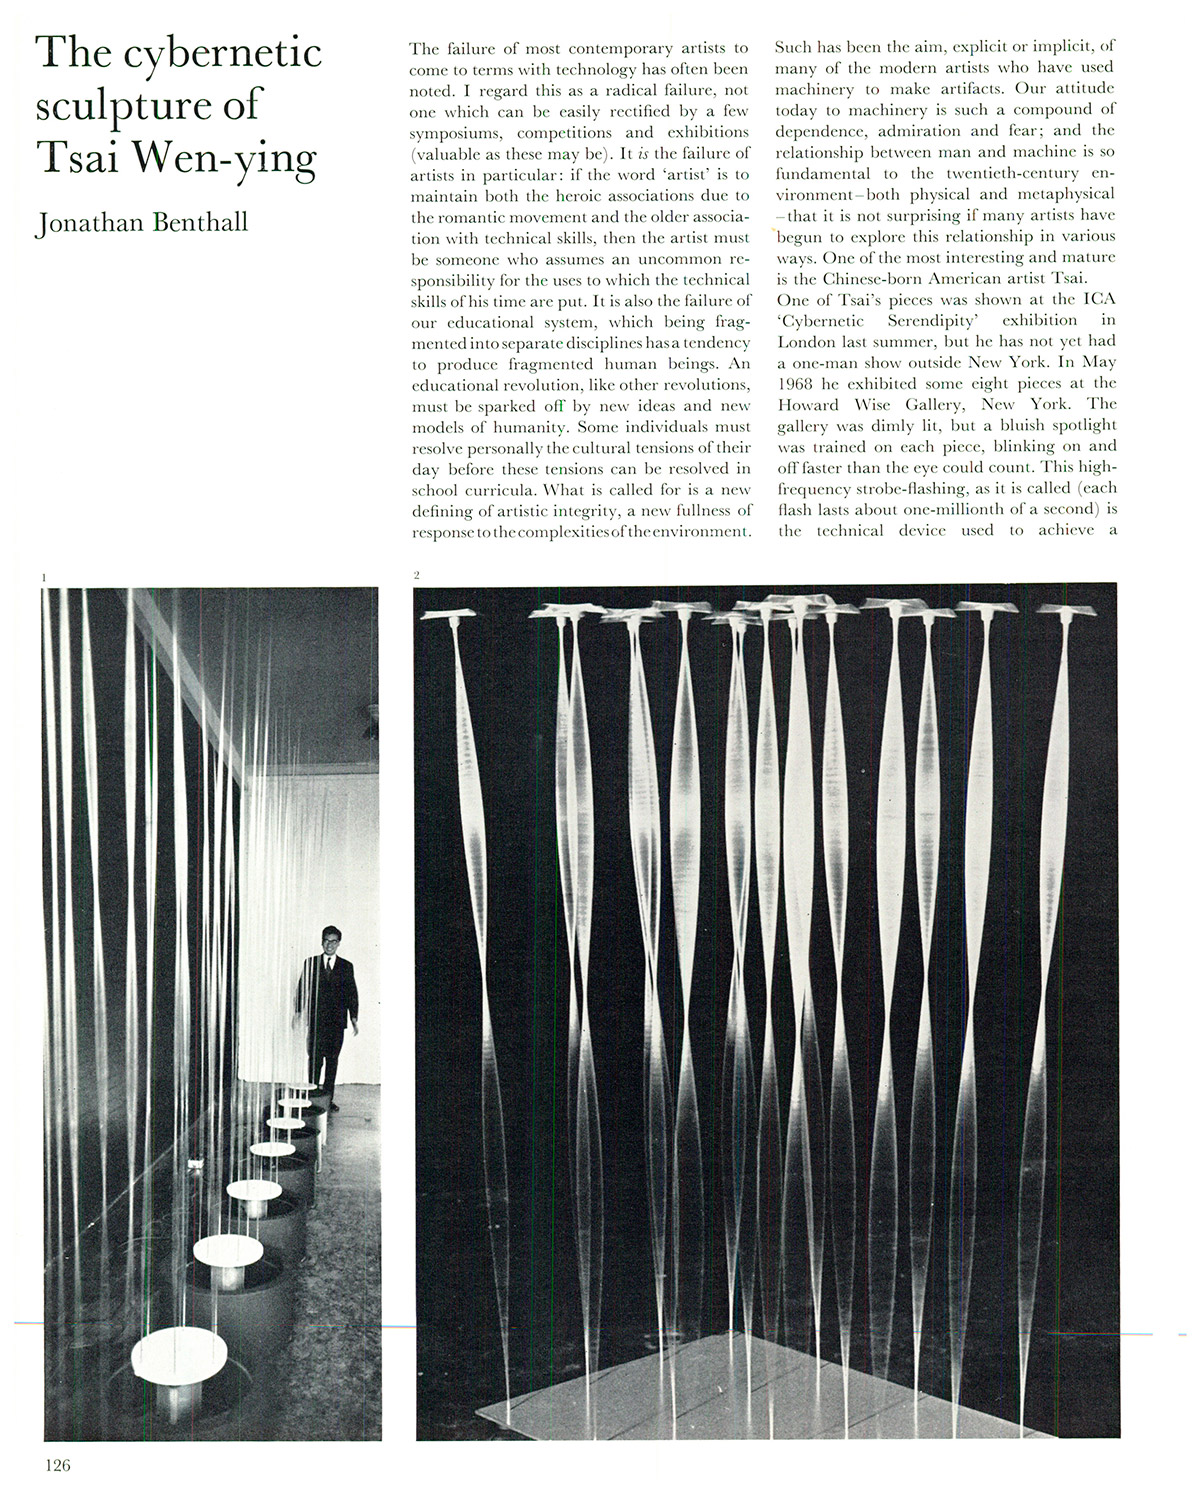 The cybernetic sculpture of Tsai Wen-ying. Studio International, Vol 177, No 909, March 1969. p. 126.